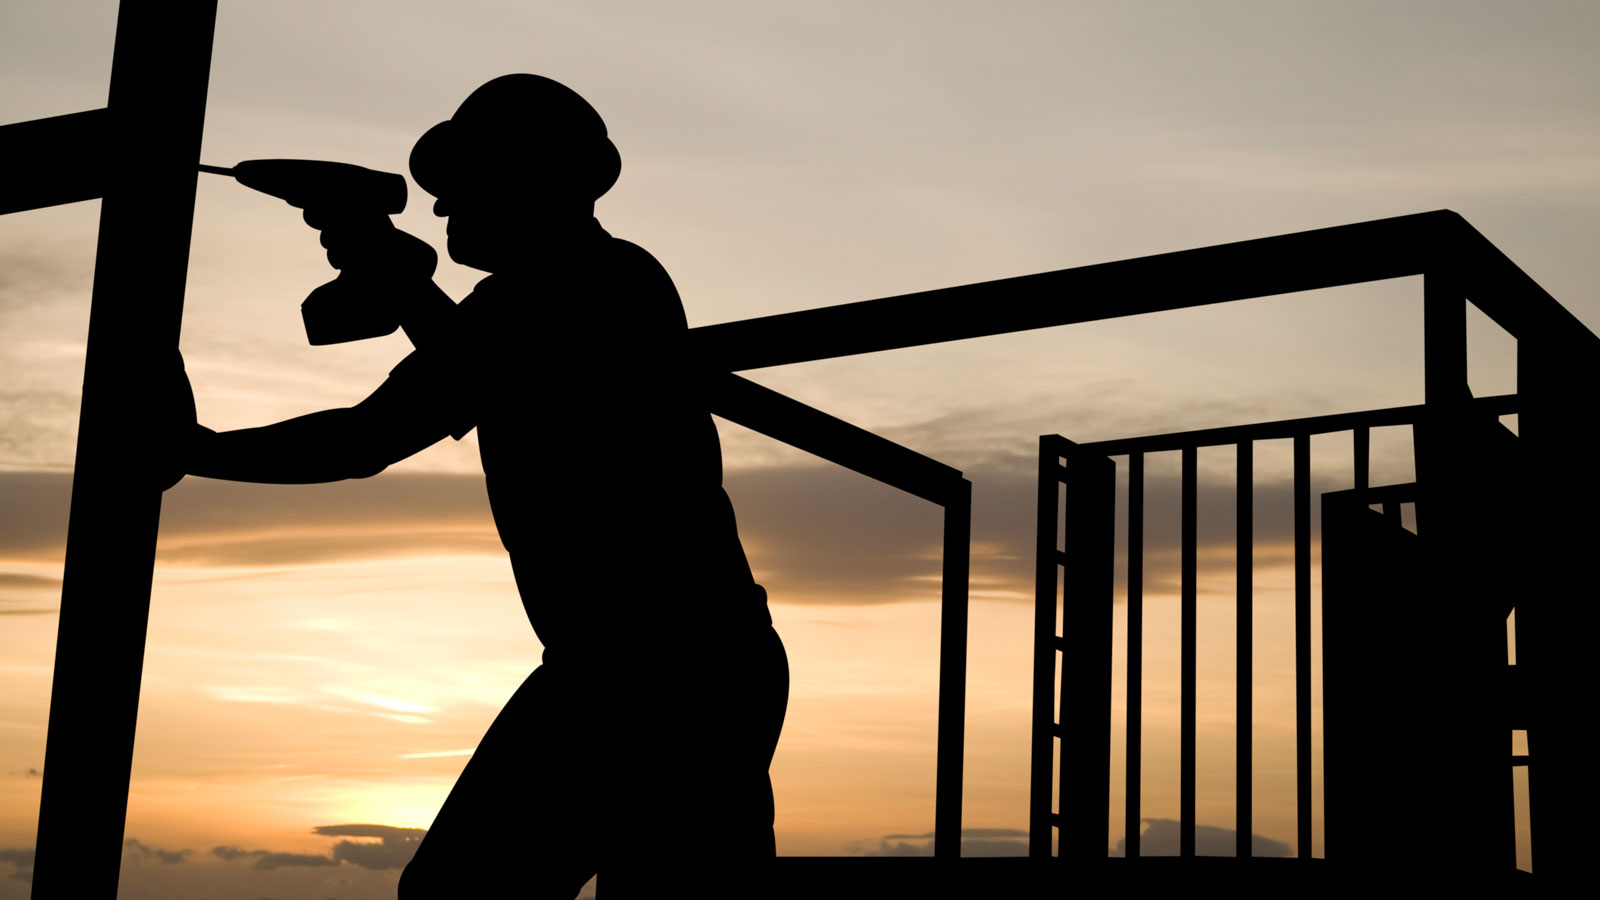 A construction worker uses a drill as he works on a building frame.